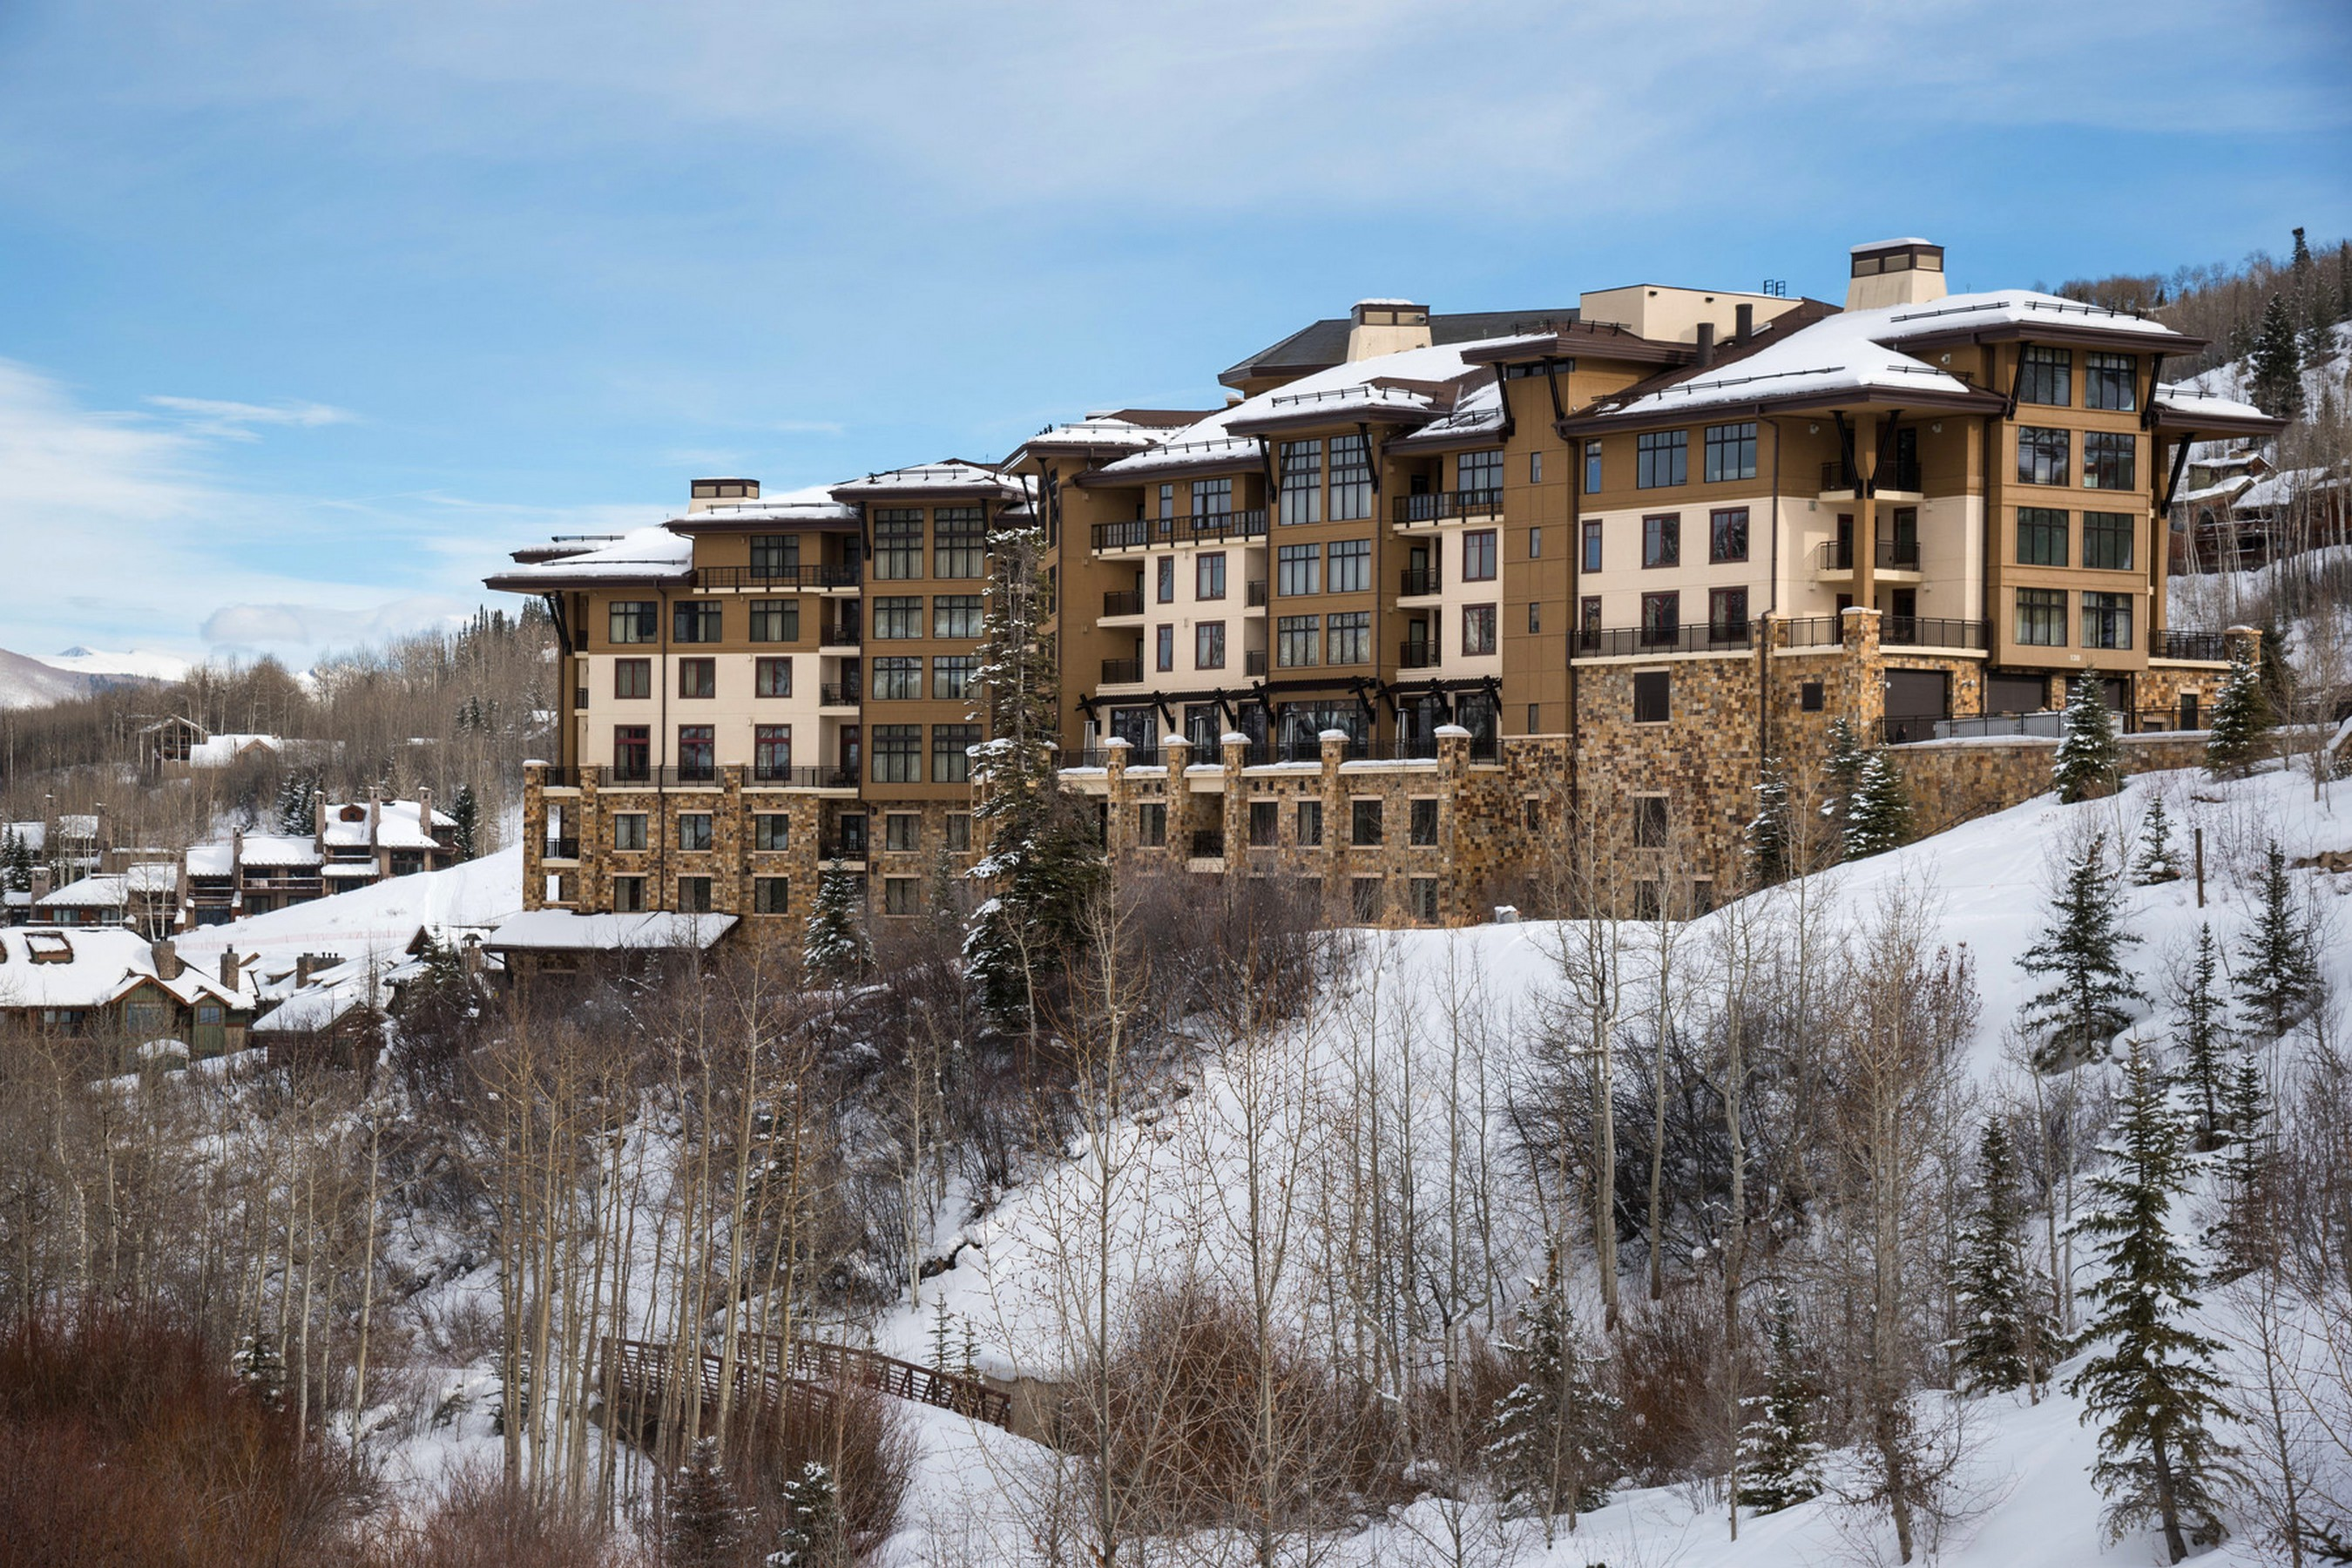 130 Wood Road, unit 214 Snowmass Village Photo 22